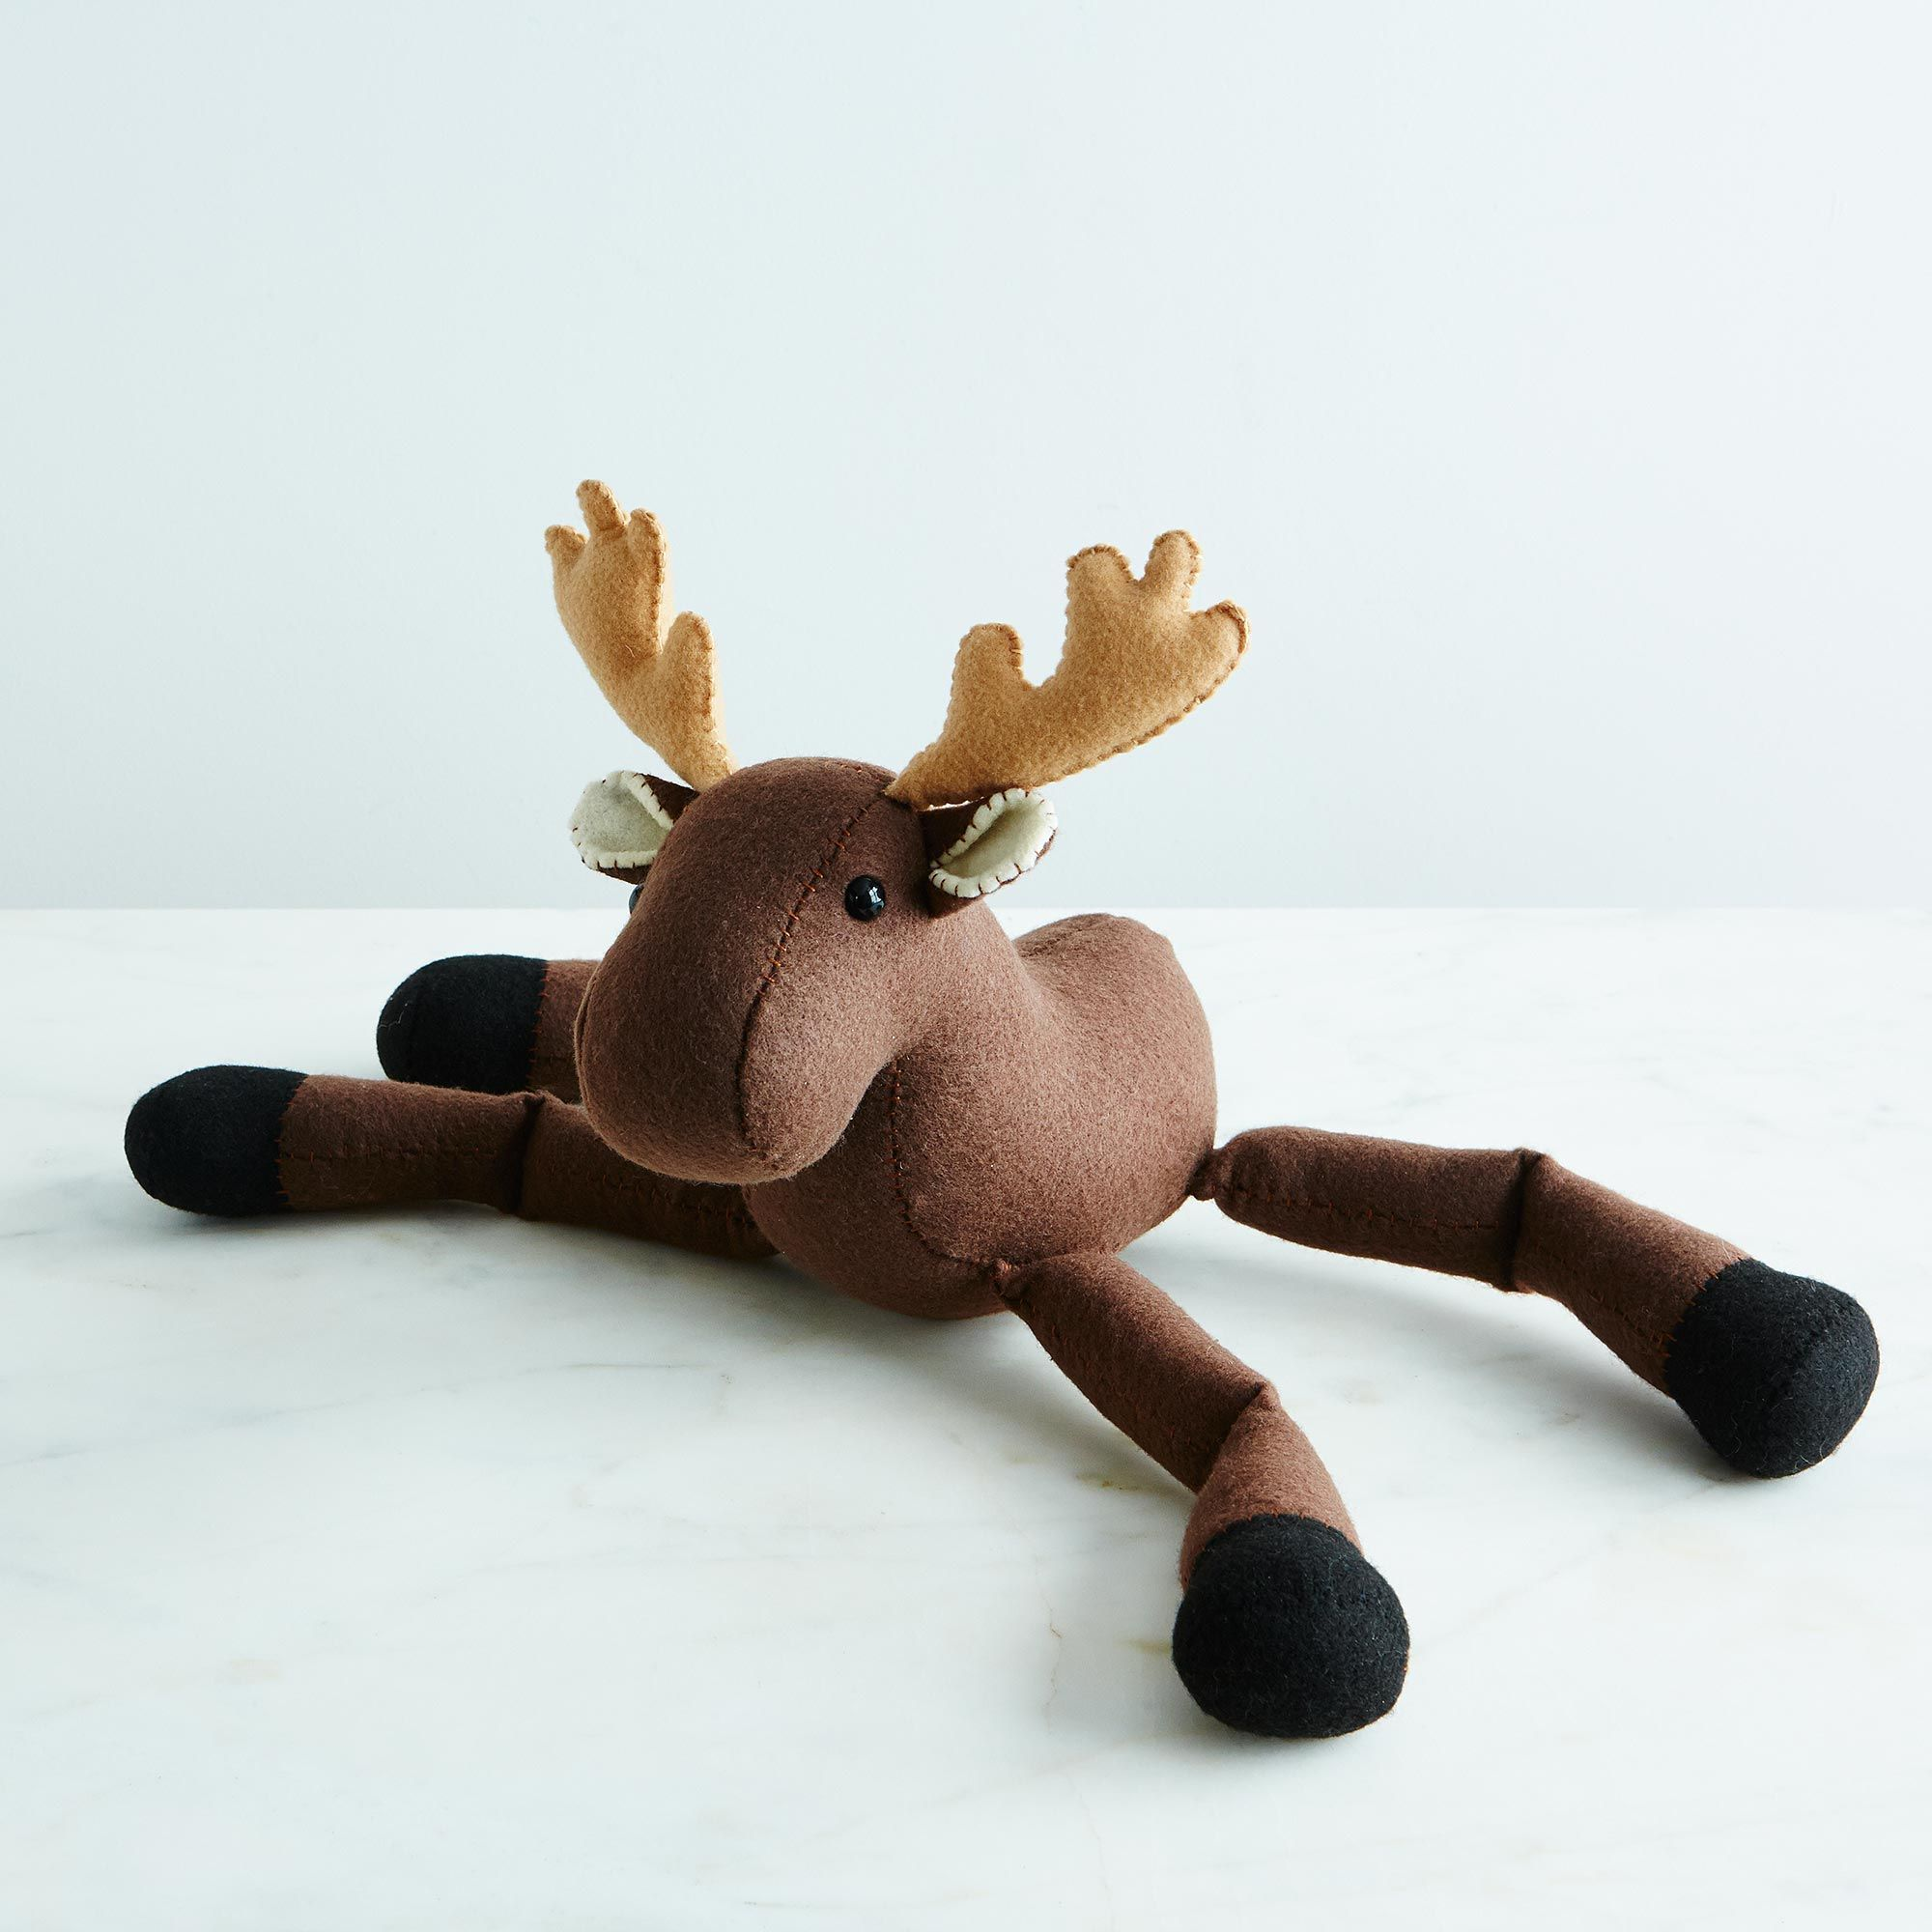 6893364e a0f7 11e5 a190 0ef7535729df  live dream create plush animals reindeer provisions mark weinberg 17 11 14 0042 silo